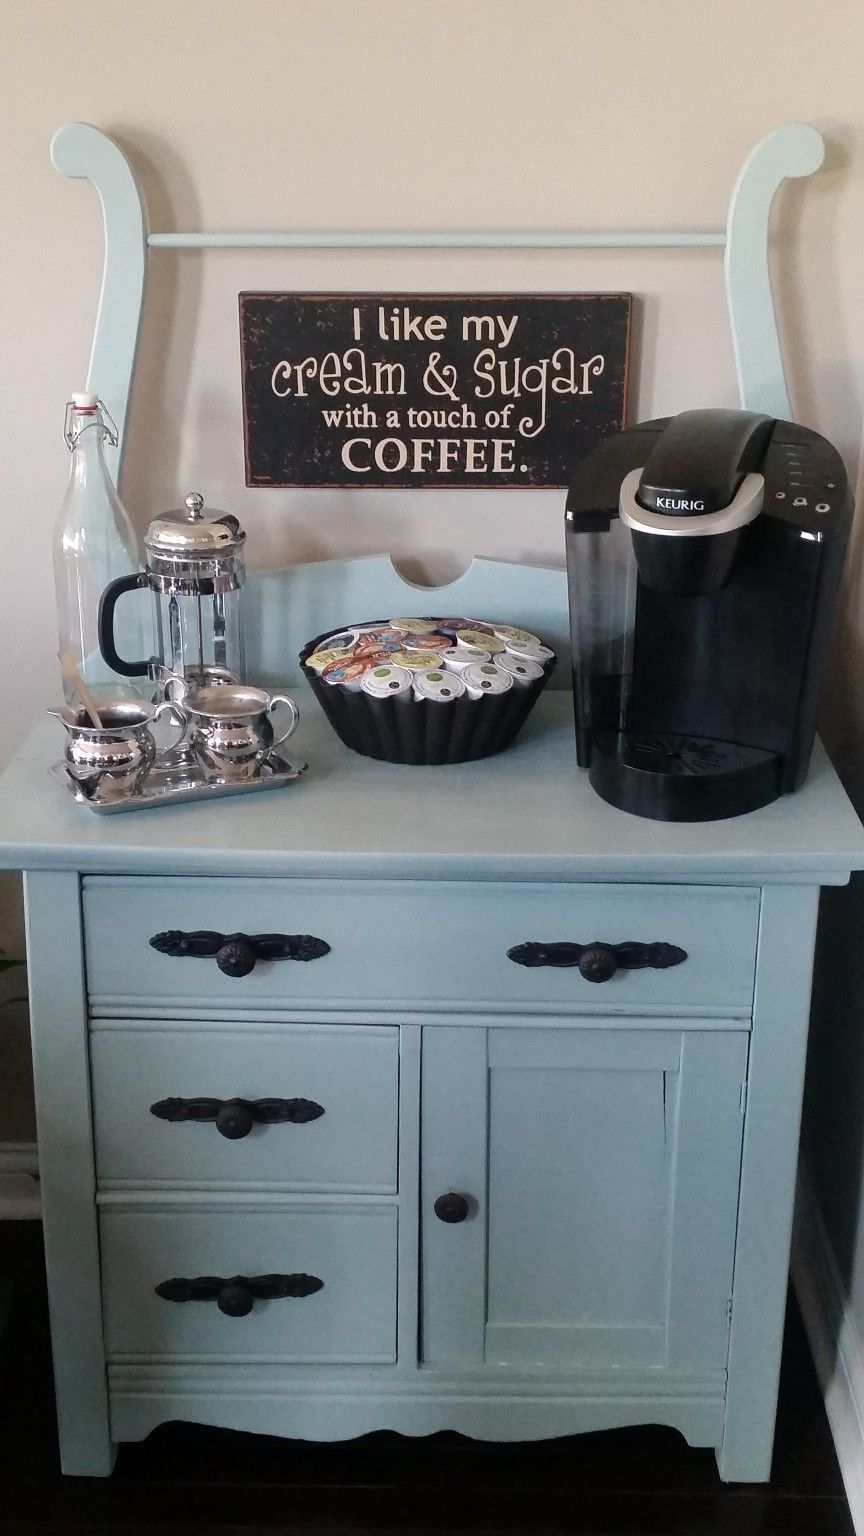 25+ DIY Coffee Bar Ideas for Your Home (Stunning Pictures) | Coffe ...